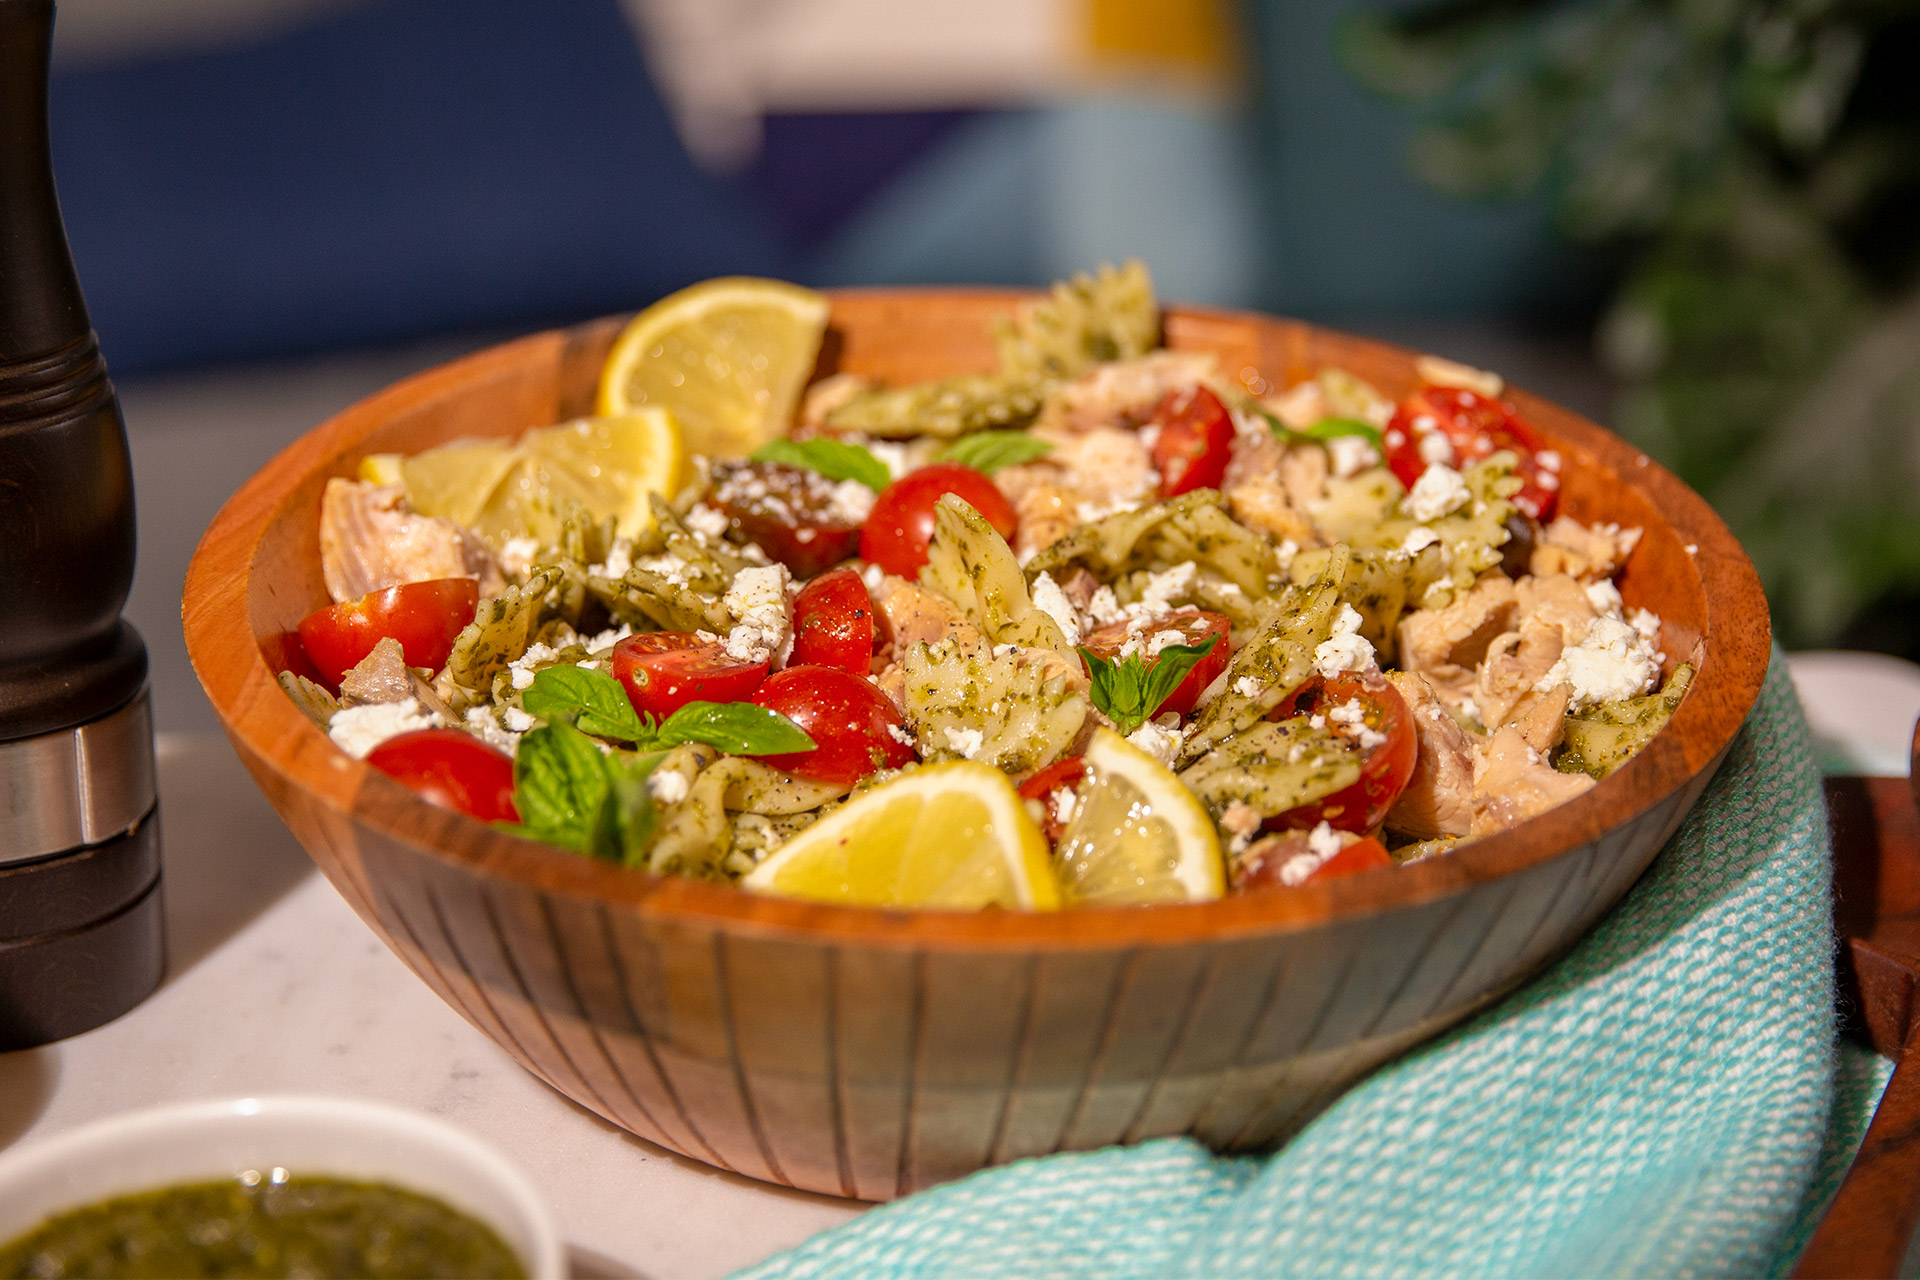 Salmon Pesto Salad